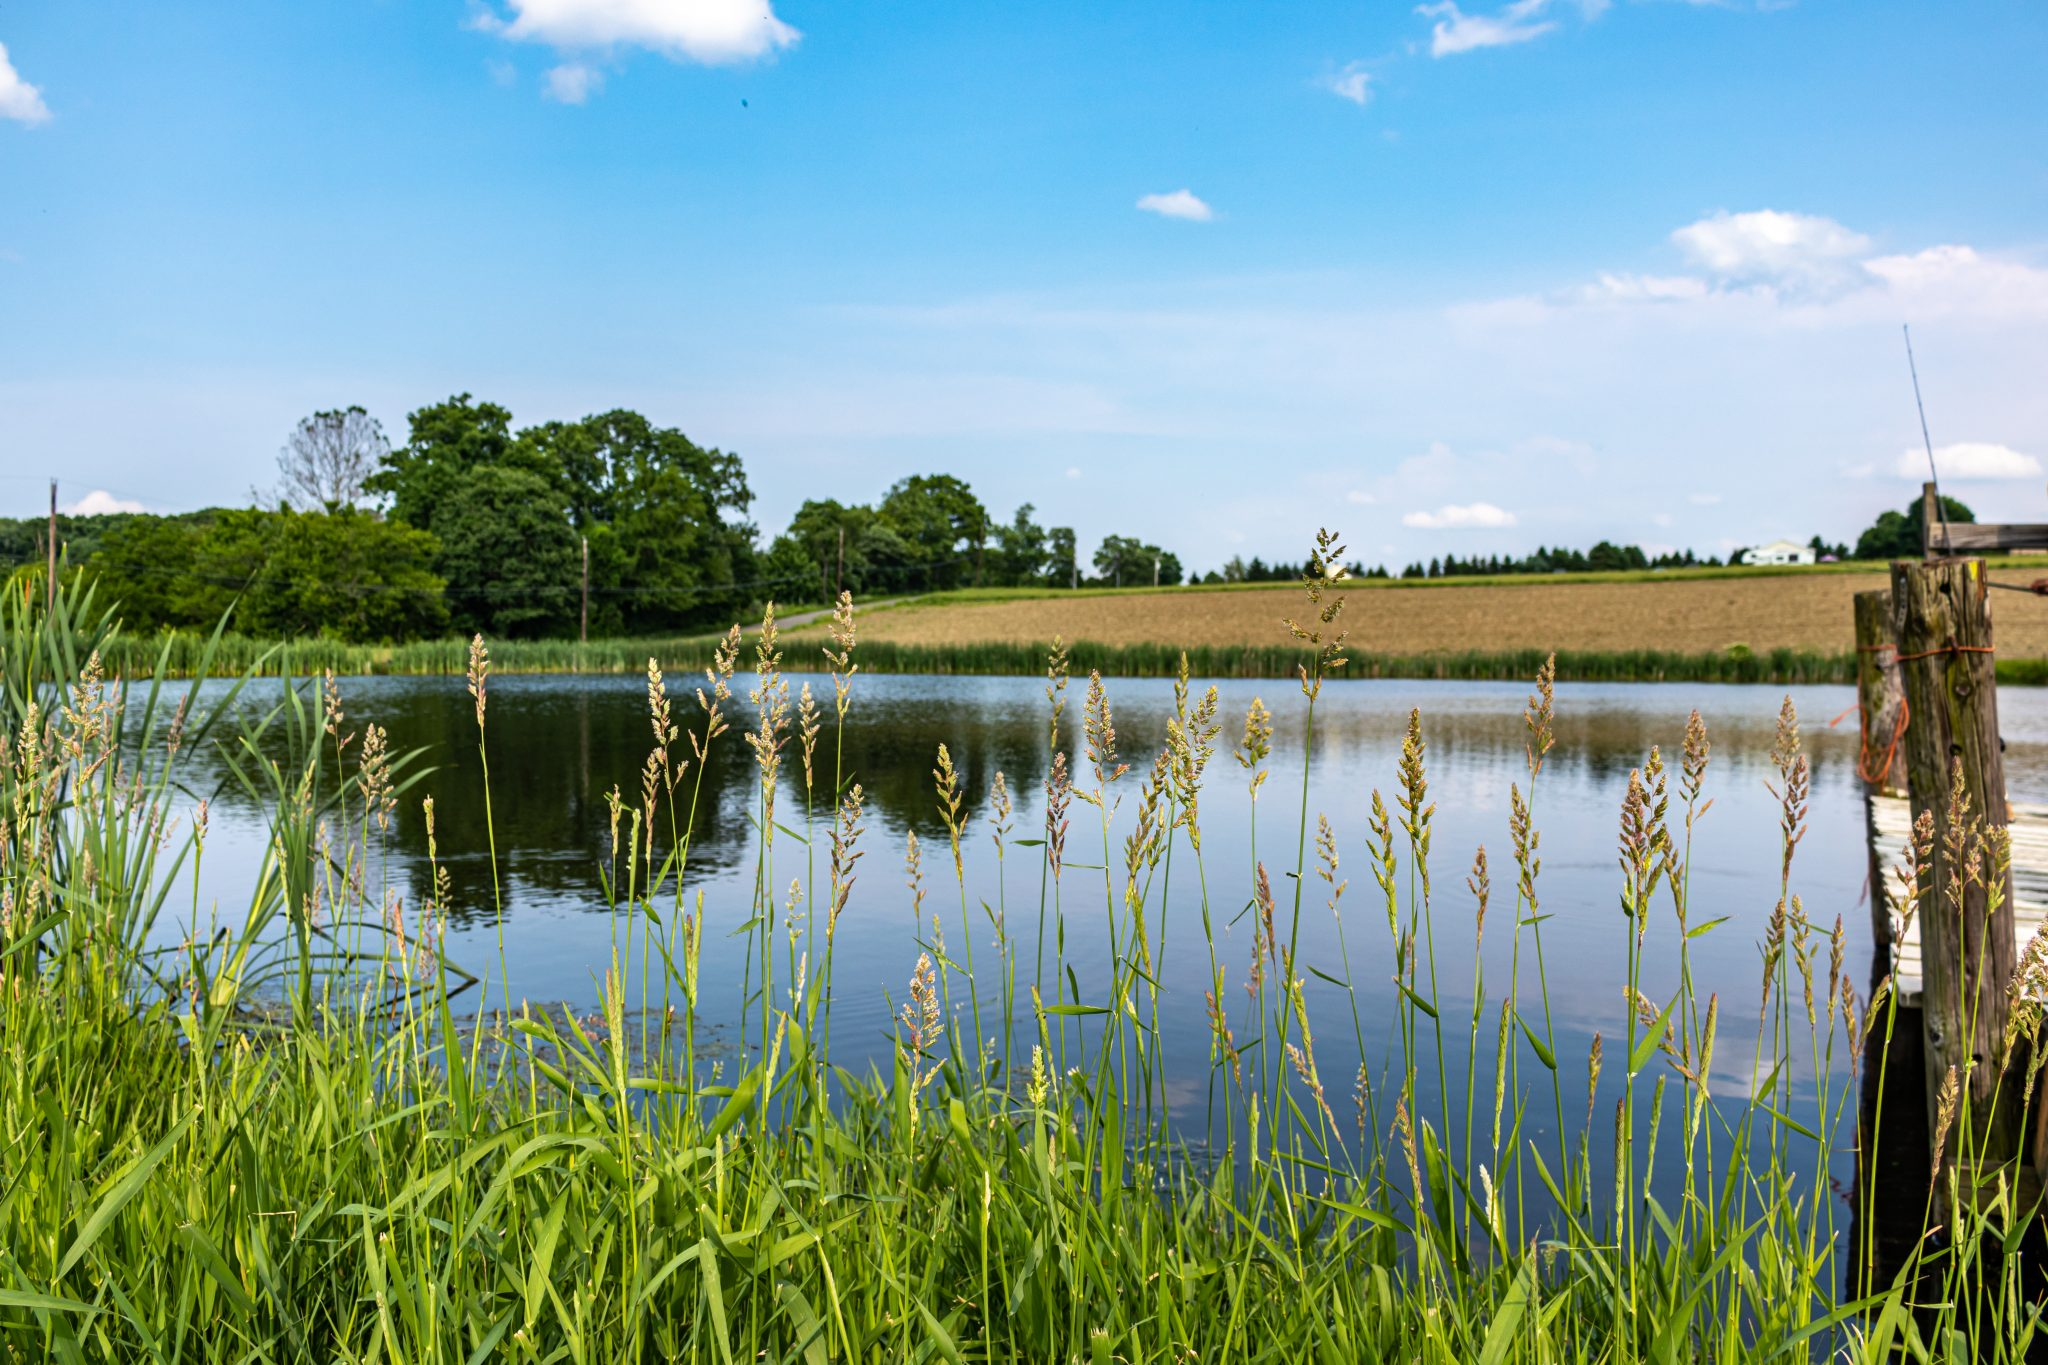 Pond in a pasture